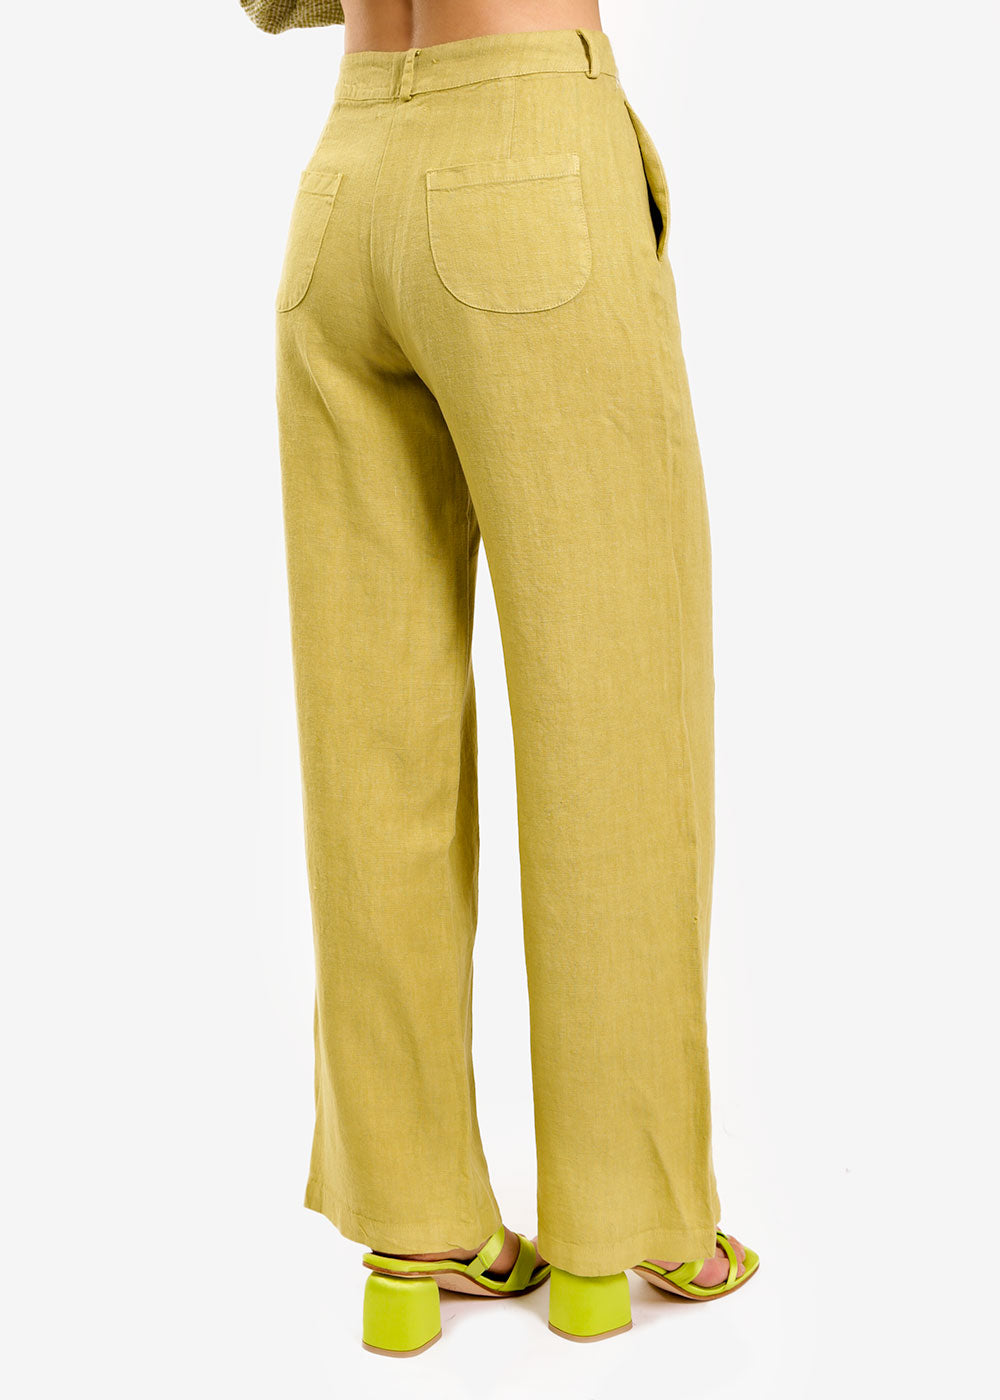 Paloma Wool Margherita Pants — Shop sustainable fashion and slow fashion at New Classics Studios